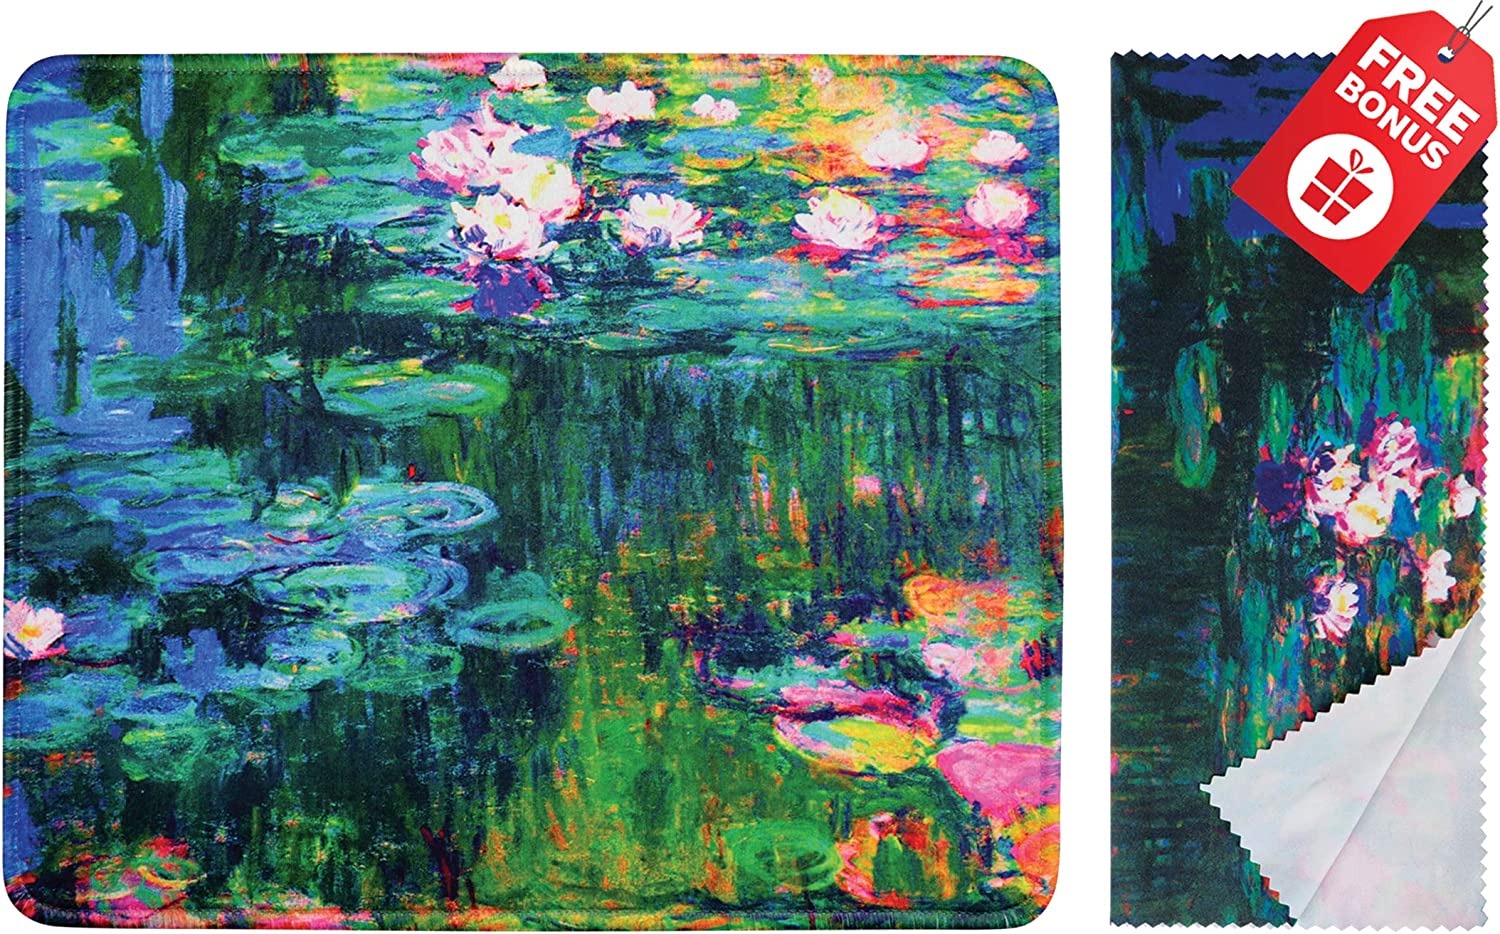 Claude Monet Water Lilies VI Mouse Pad with Colorful Classic Artwork Design. Non Slip Base. Matching Microfiber Cleaning Cloth for Eye Glasses & Electronics. Cool Mouse Pad for Laptop & Travel